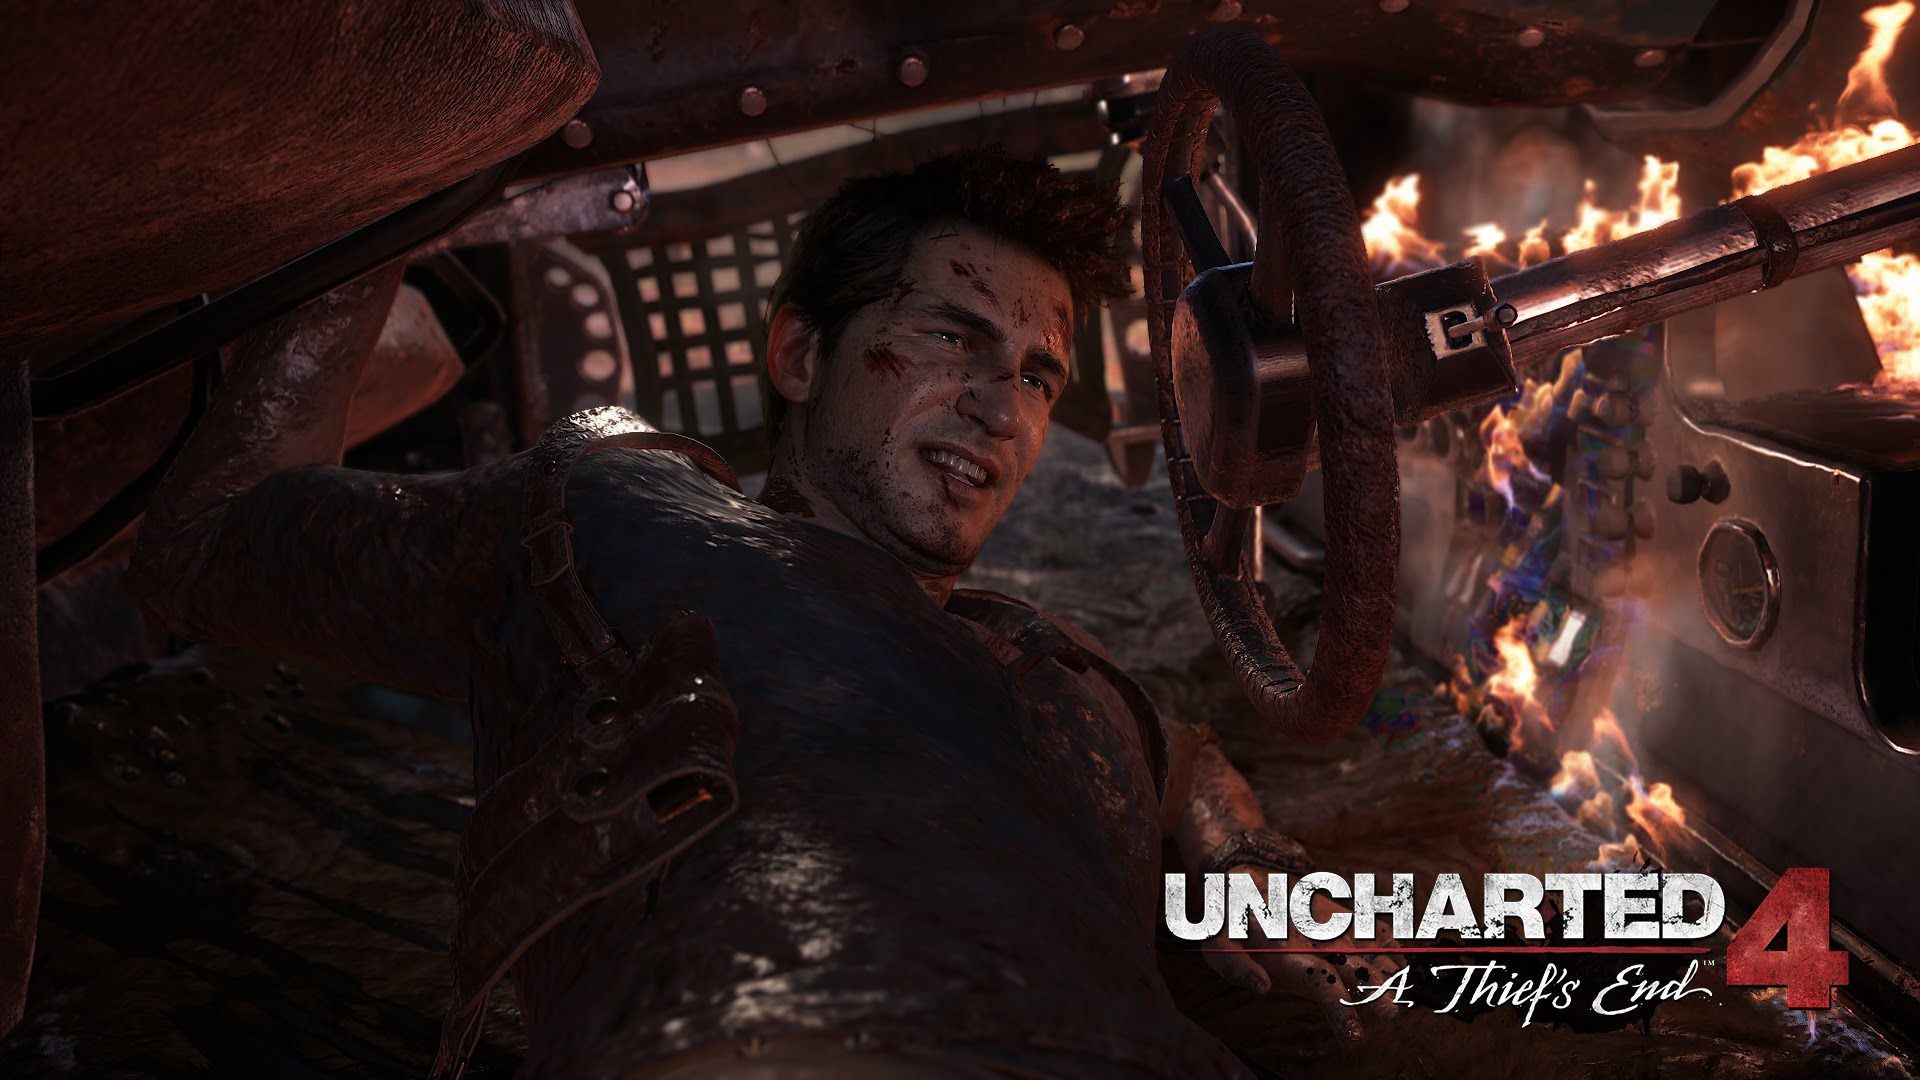 Ps4 Exclusive Uncharted 4 S Multiplayer End Gets A Ton Of Details